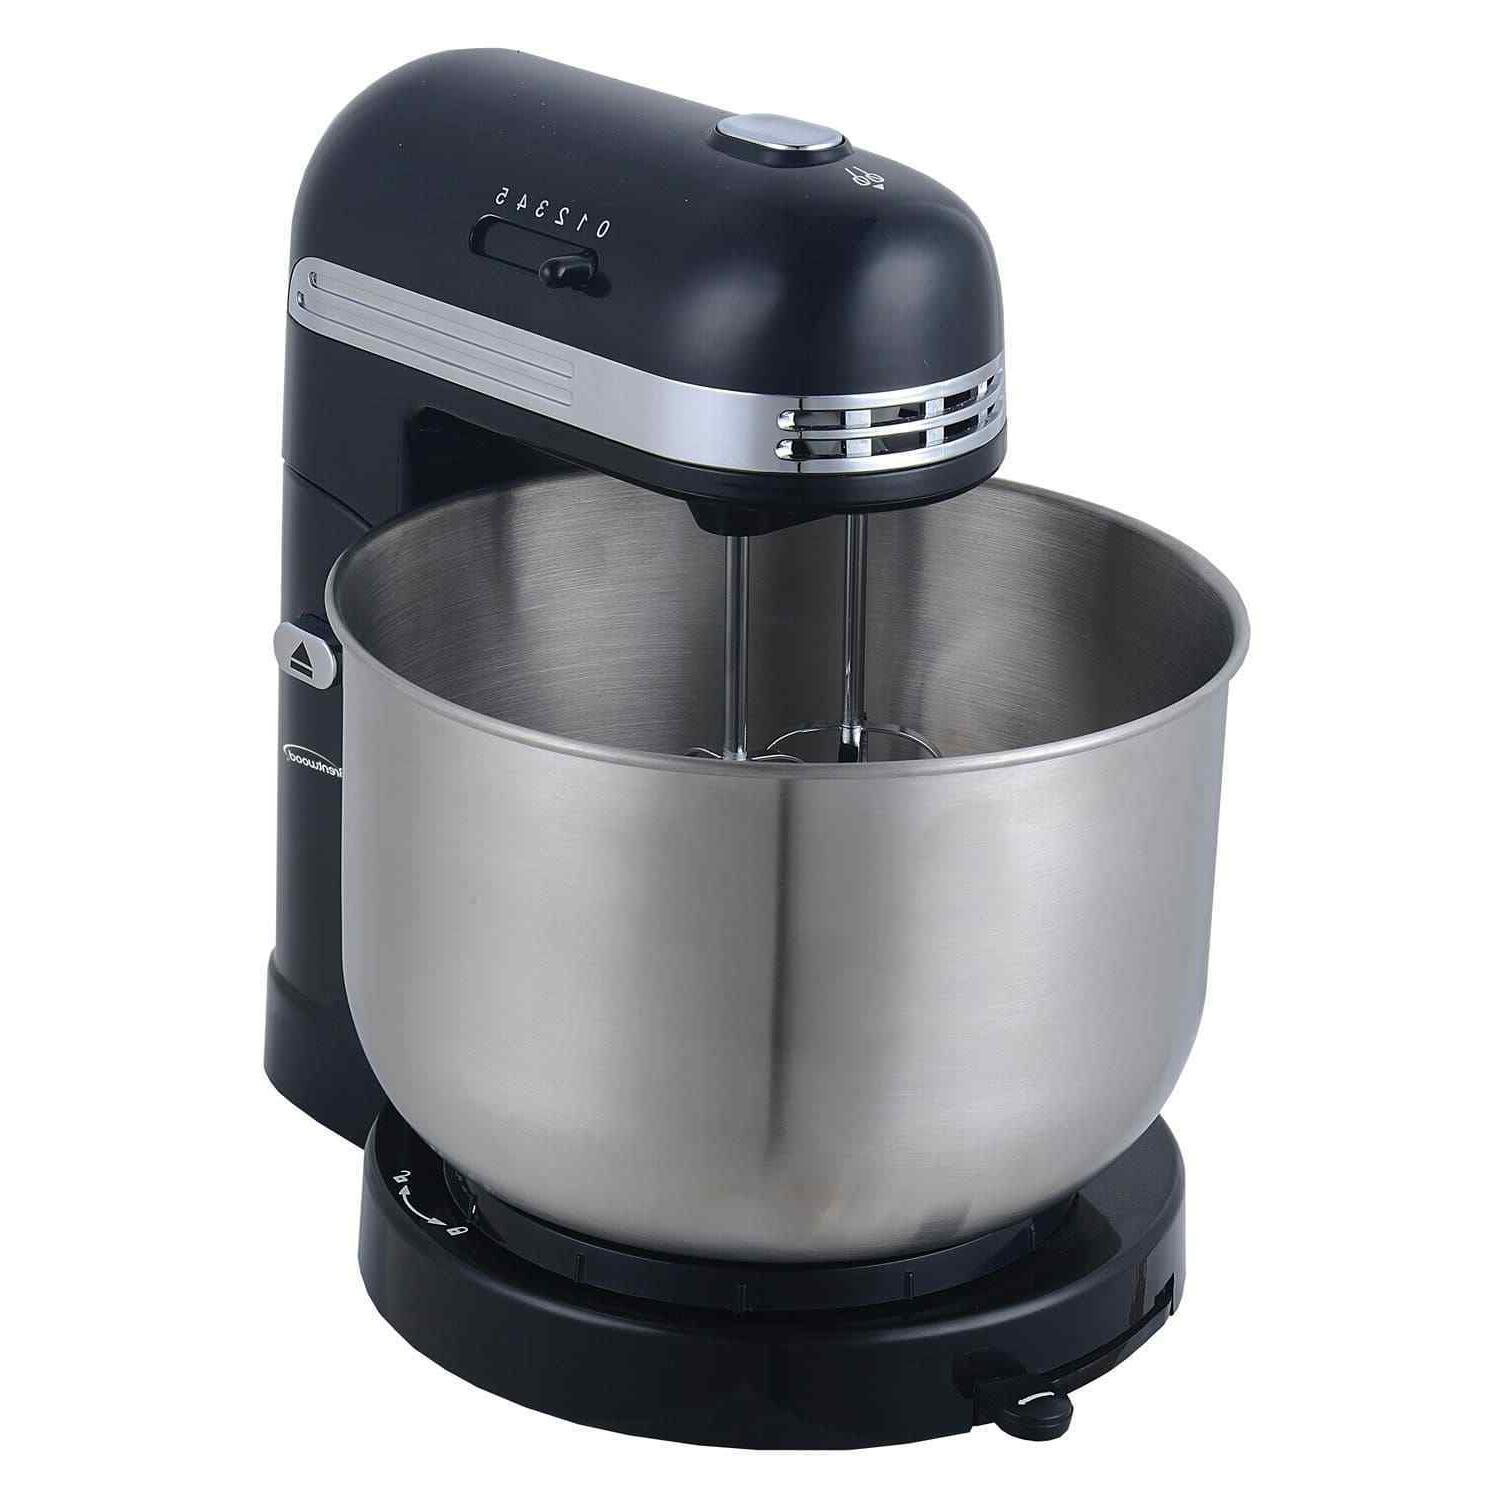 Brentwood 5-Speed Mixer Quart Stainless Steel Mixing